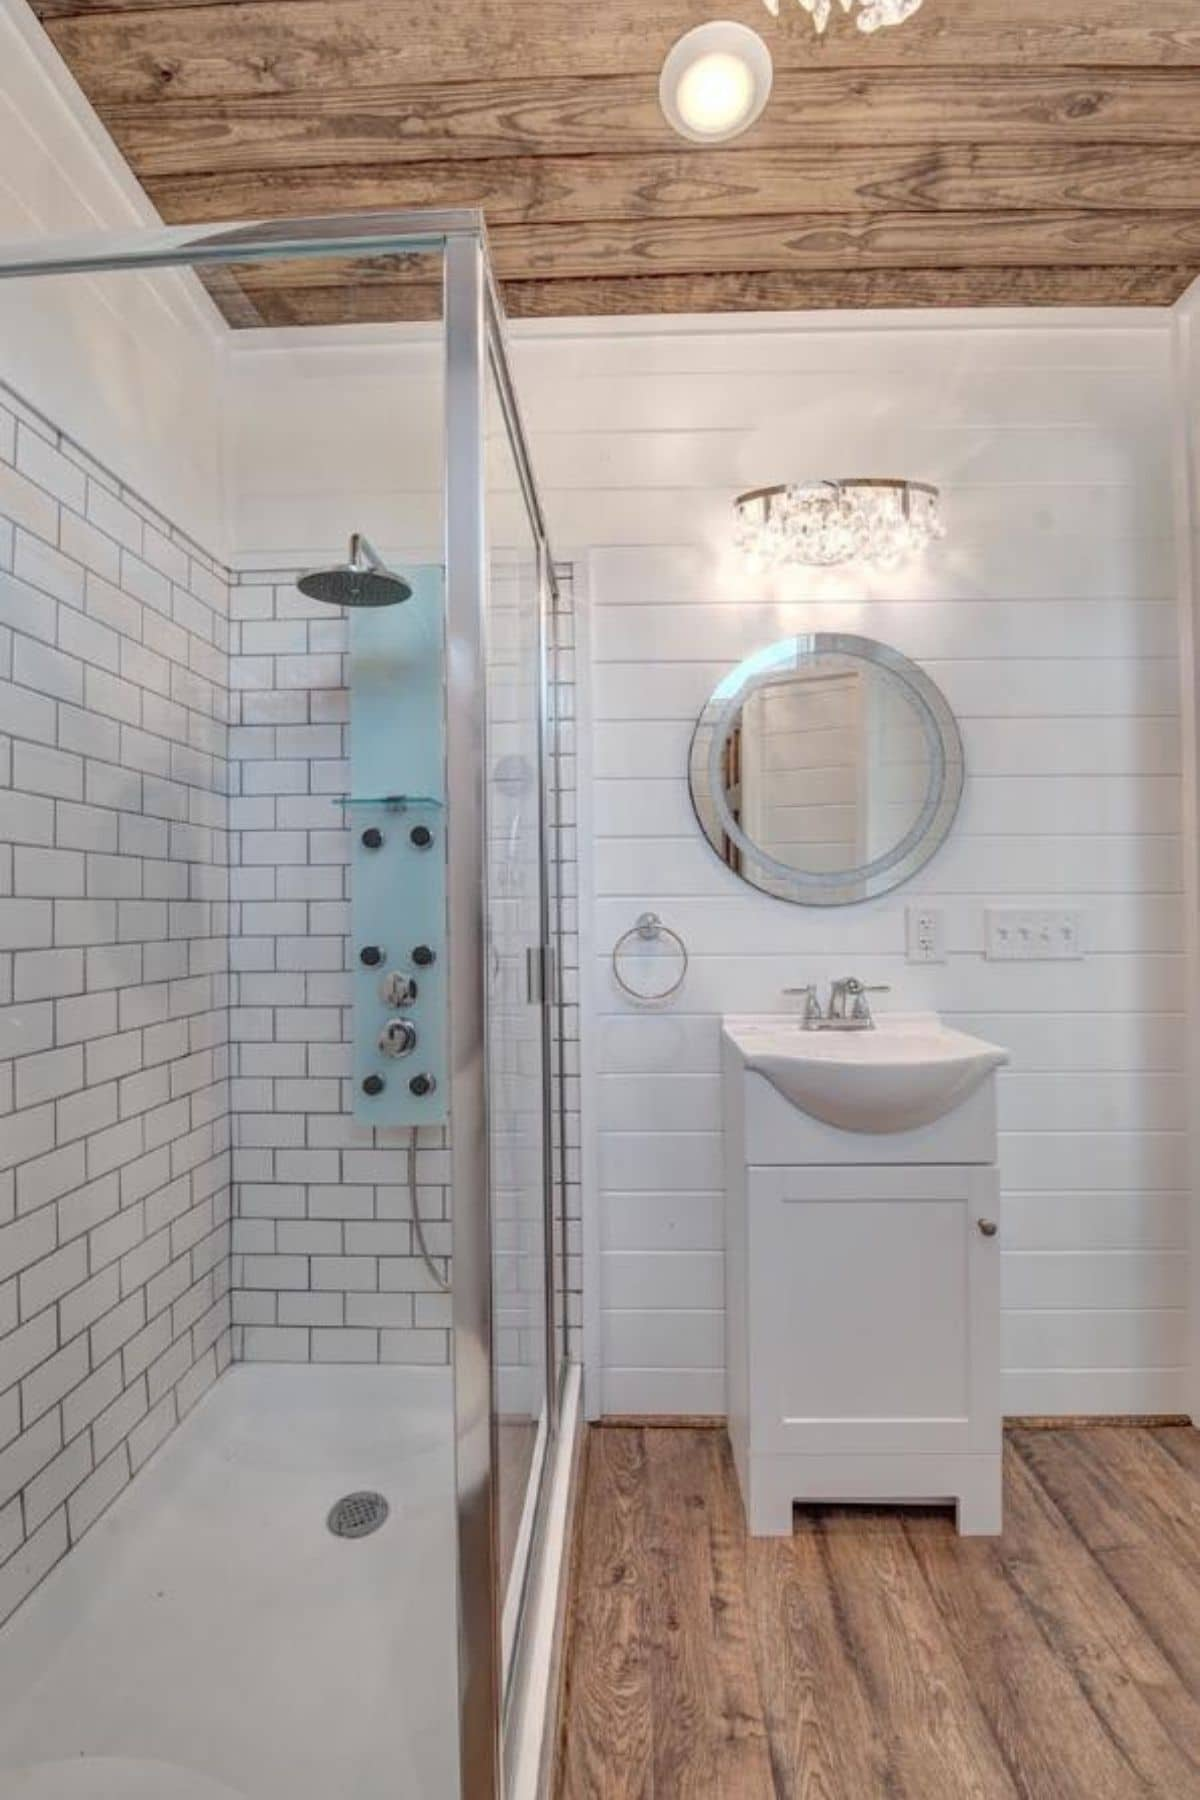 Tiled shower with glass door beside small white vanity with round mirror